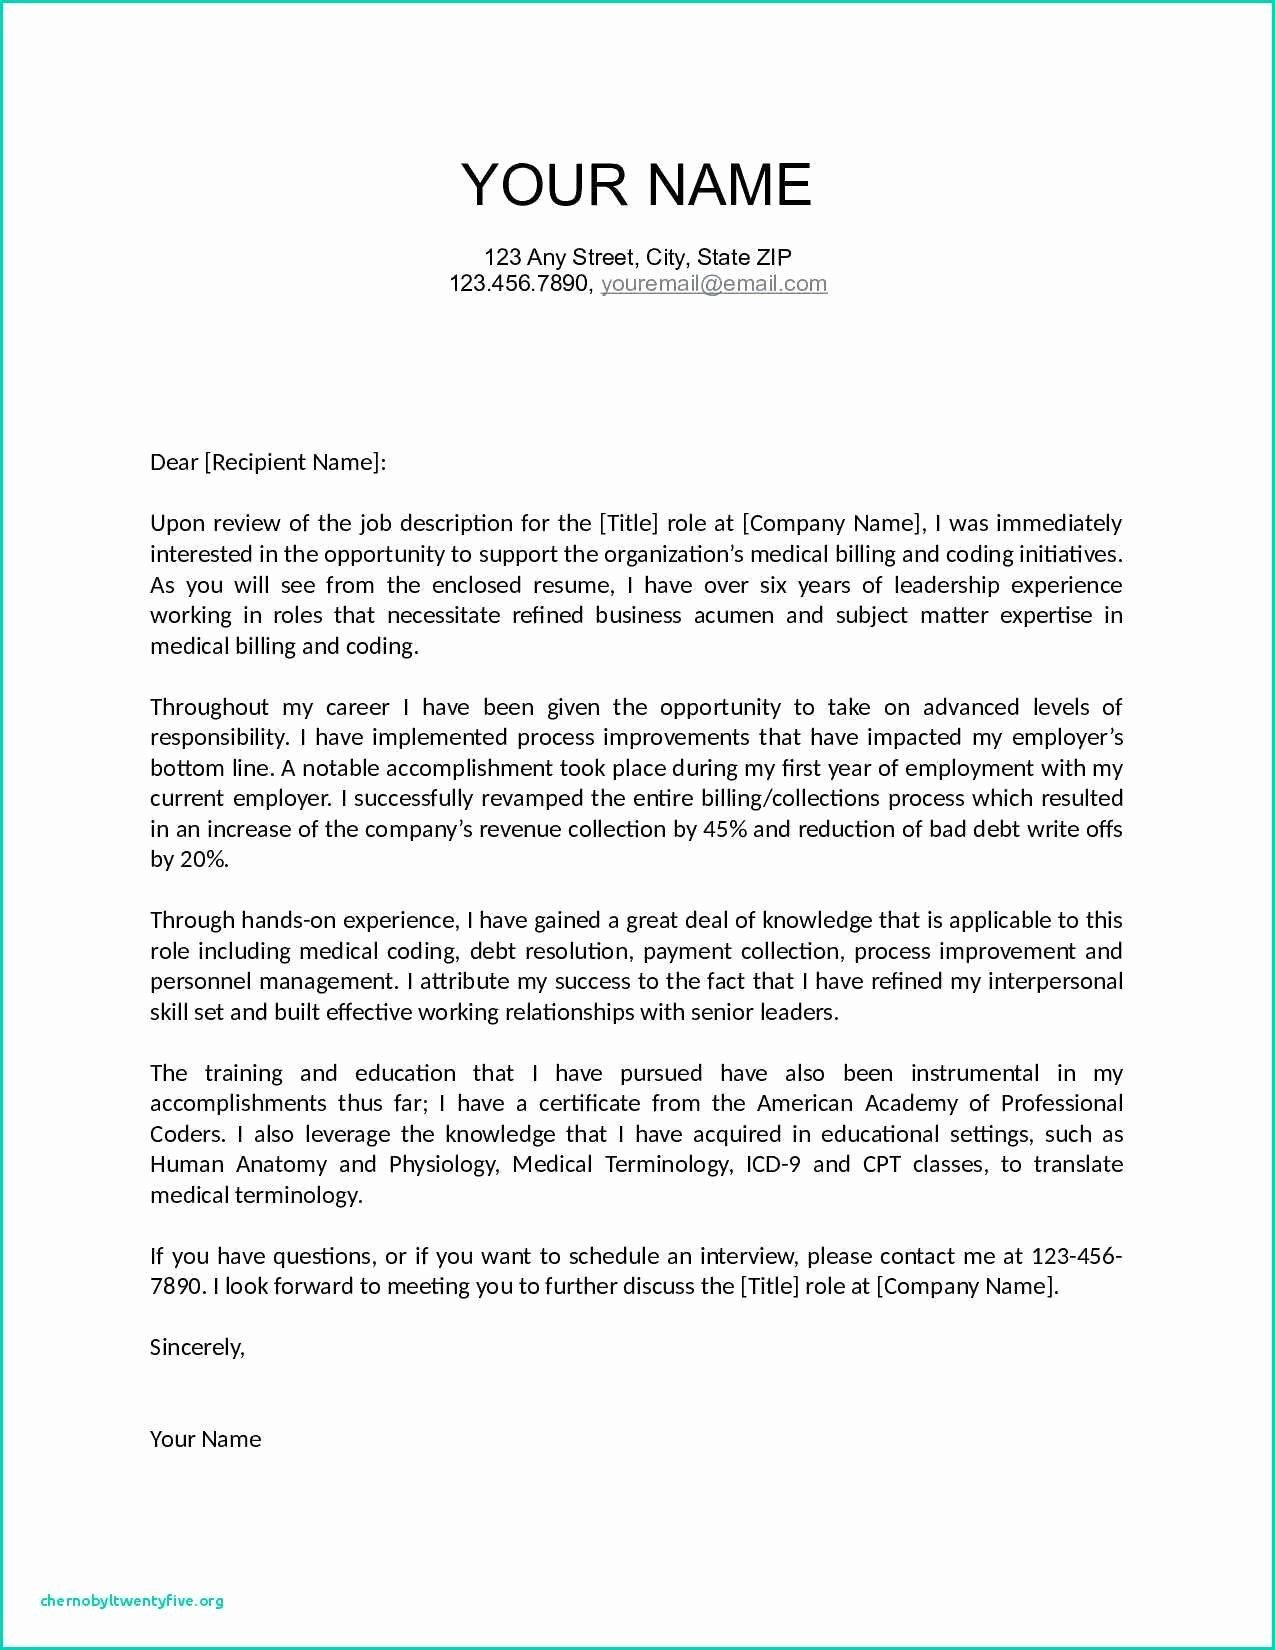 Green Card Recommendation Letter from i.pinimg.com